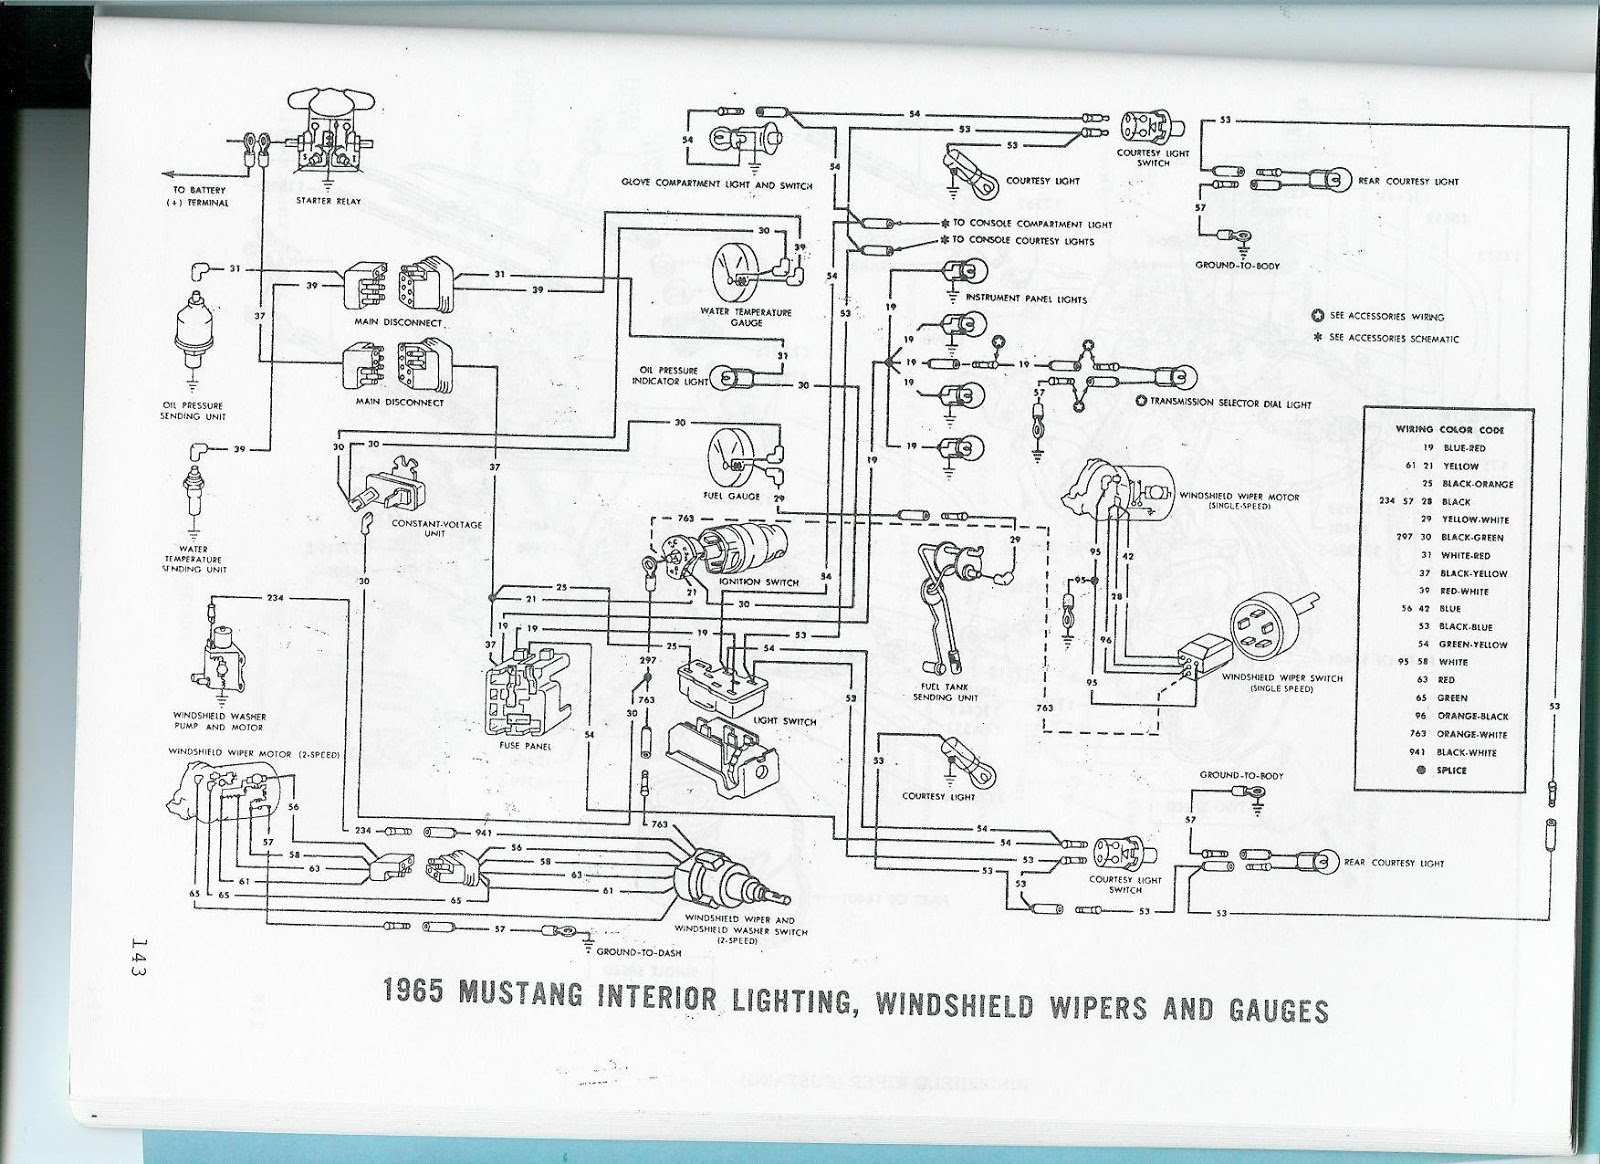 9FC89 1993 6bt Wiring Diagram | Digital Resources on dodge repair diagrams, dodge cooling system diagram, dodge stratus electrical diagrams, dodge charger diagram, dodge ram rear door wiring harness, dodge fuel filter replacement, dodge stereo wiring, dodge exhaust diagrams, dodge ignition system, dodge blueprints, 2003 dodge dakota diagrams, dodge brake line diagrams, dodge door sill plates, dodge ram 1500 electrical diagrams, dodge fuel system diagram, dodge truck wiring, dodge water pump replacement, dodge oil pressure sending unit, dodge steering diagram, dodge engine,